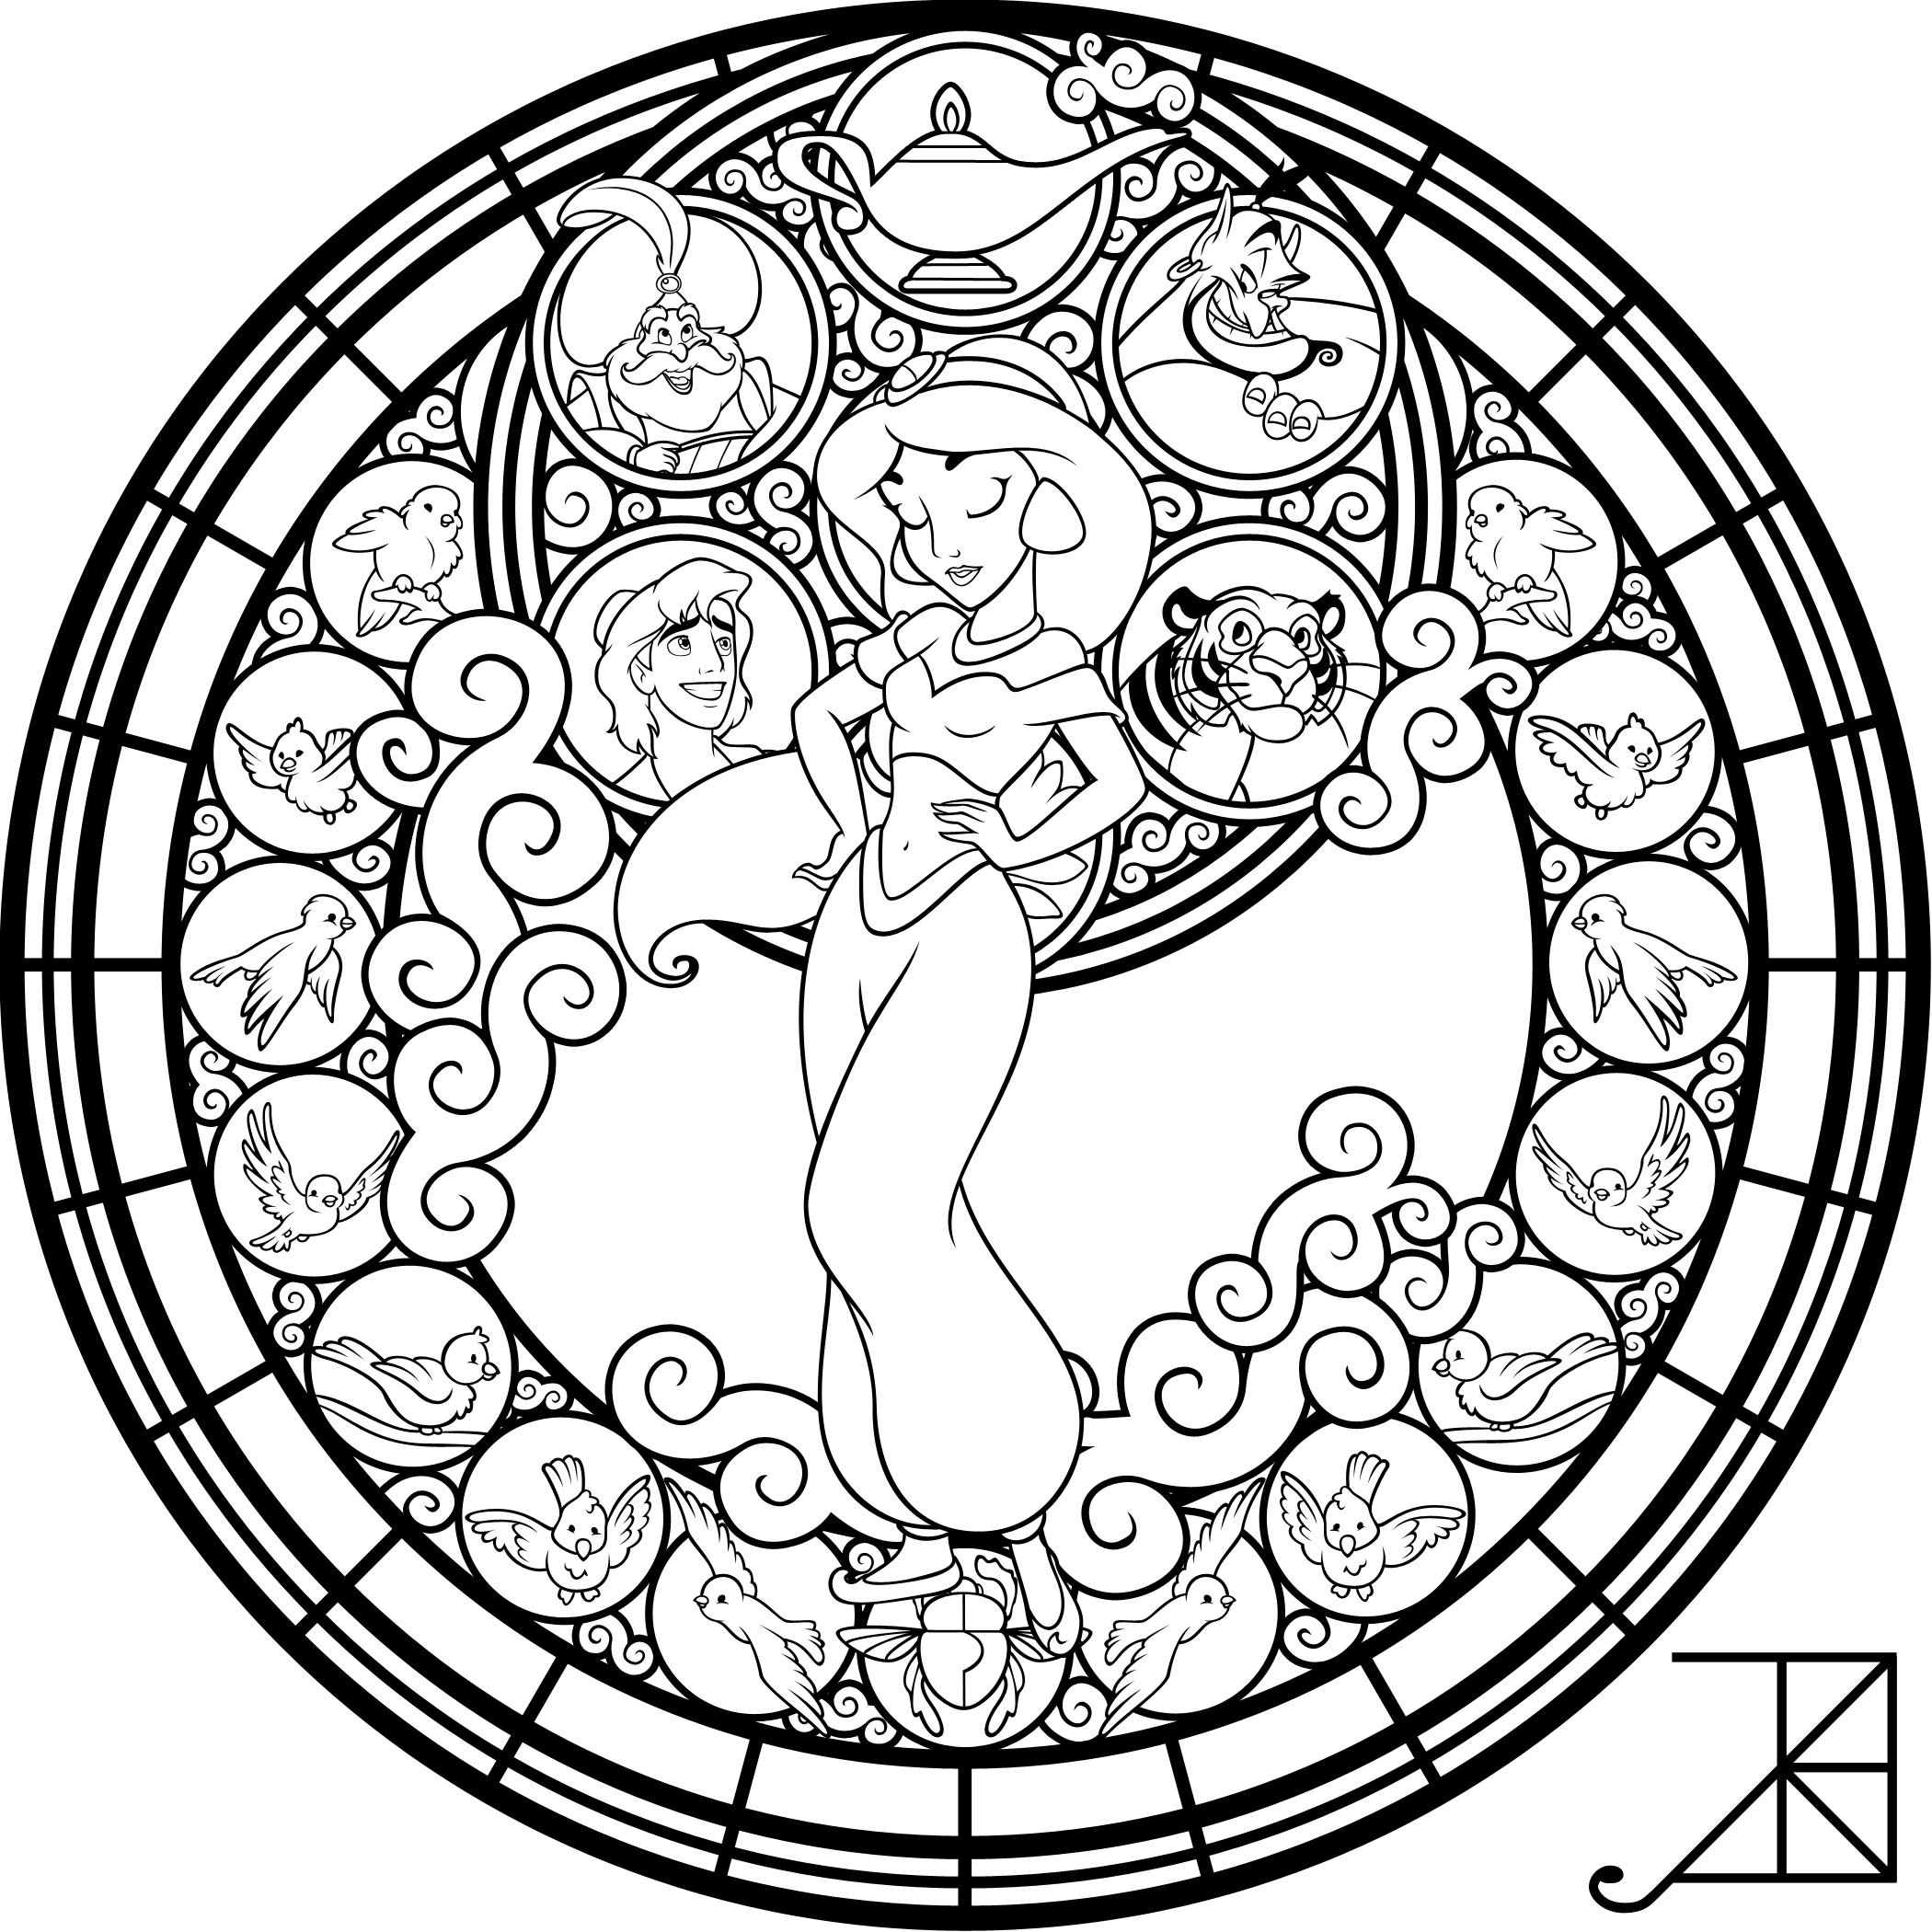 Coloring Pages Disney Coloring Pages Cool Coloring Pages [ 2100 x 2100 Pixel ]